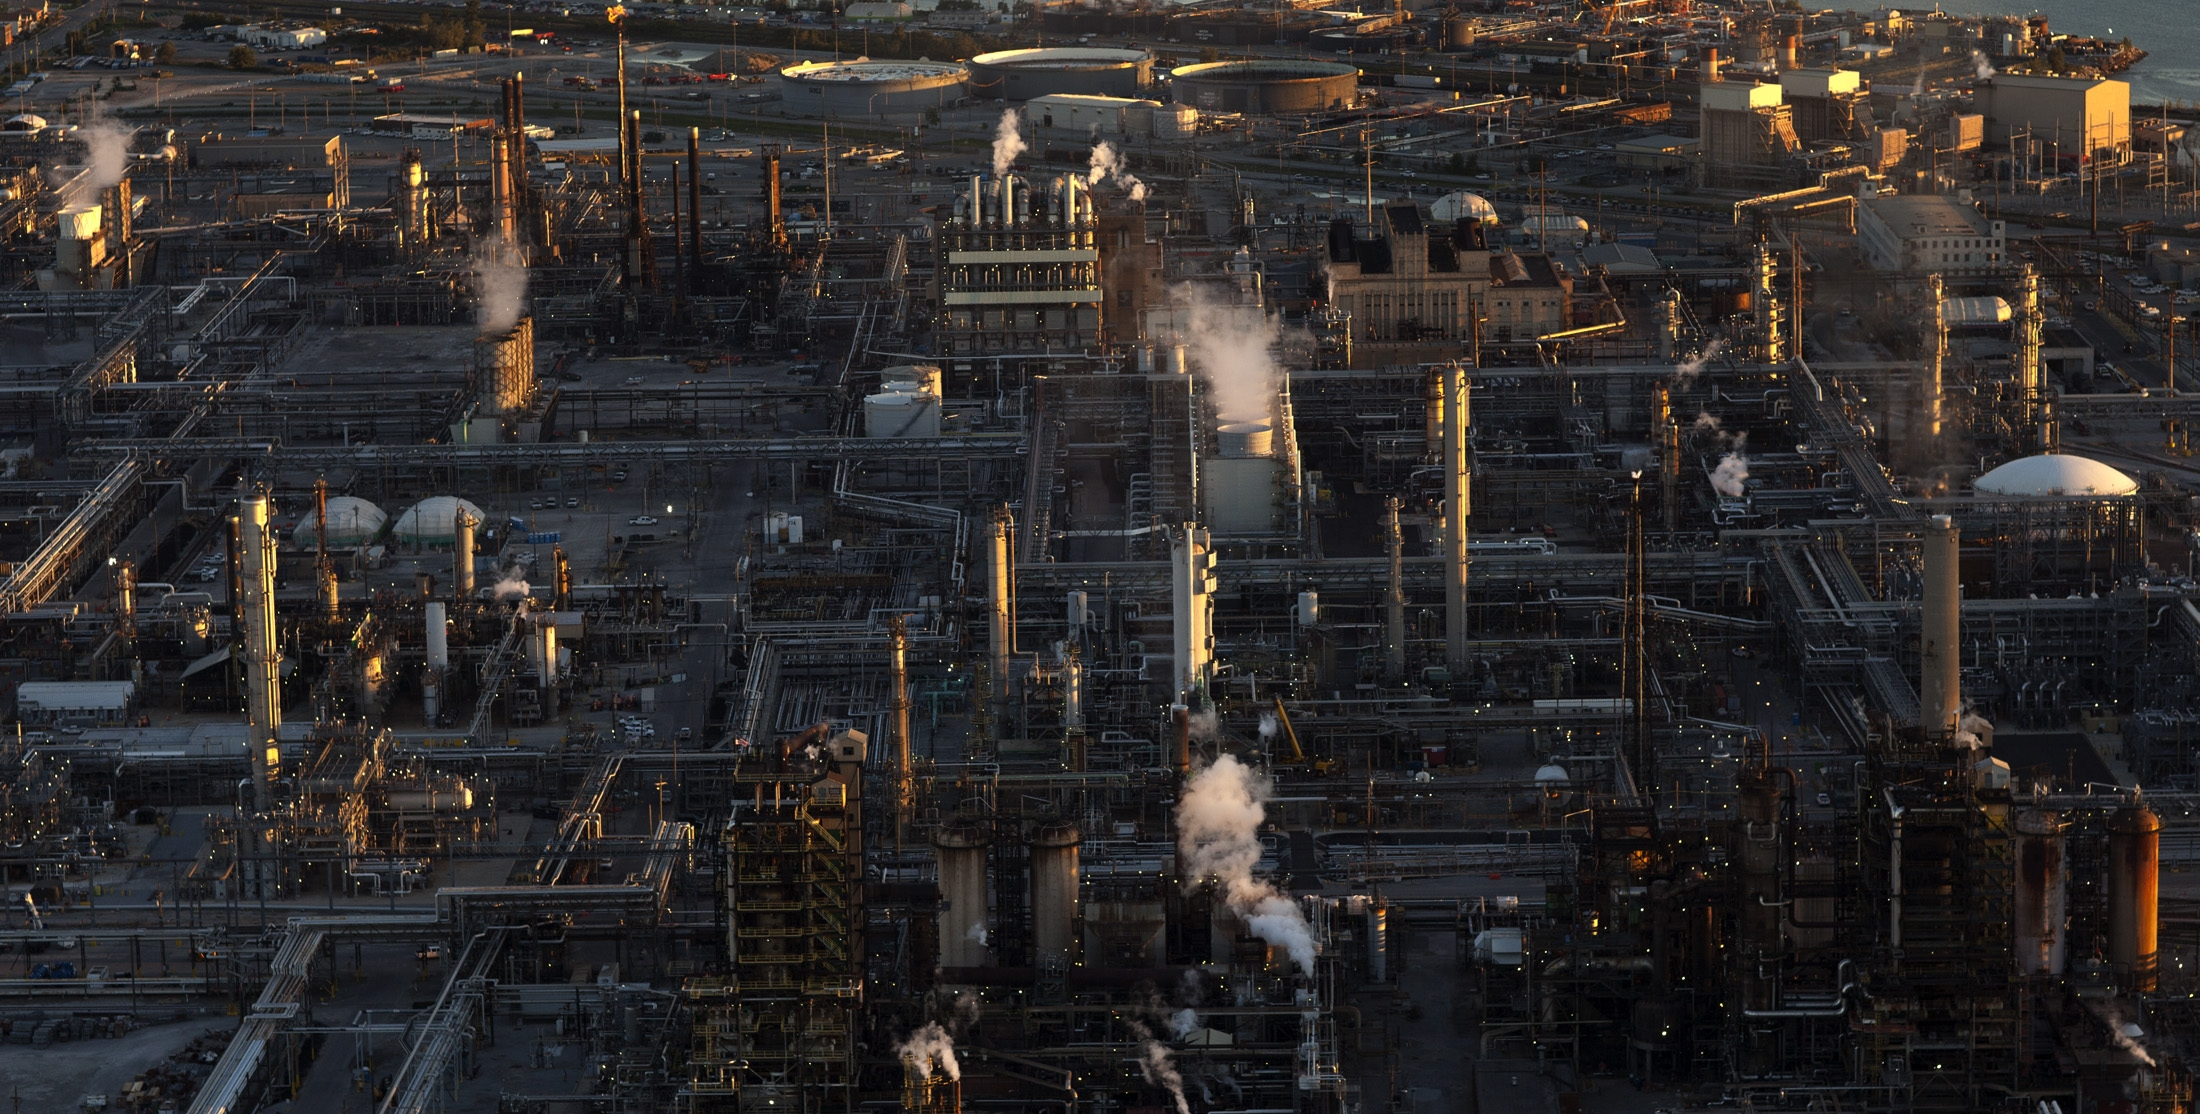 BP Refinery, Whiting, Indiana, 2015